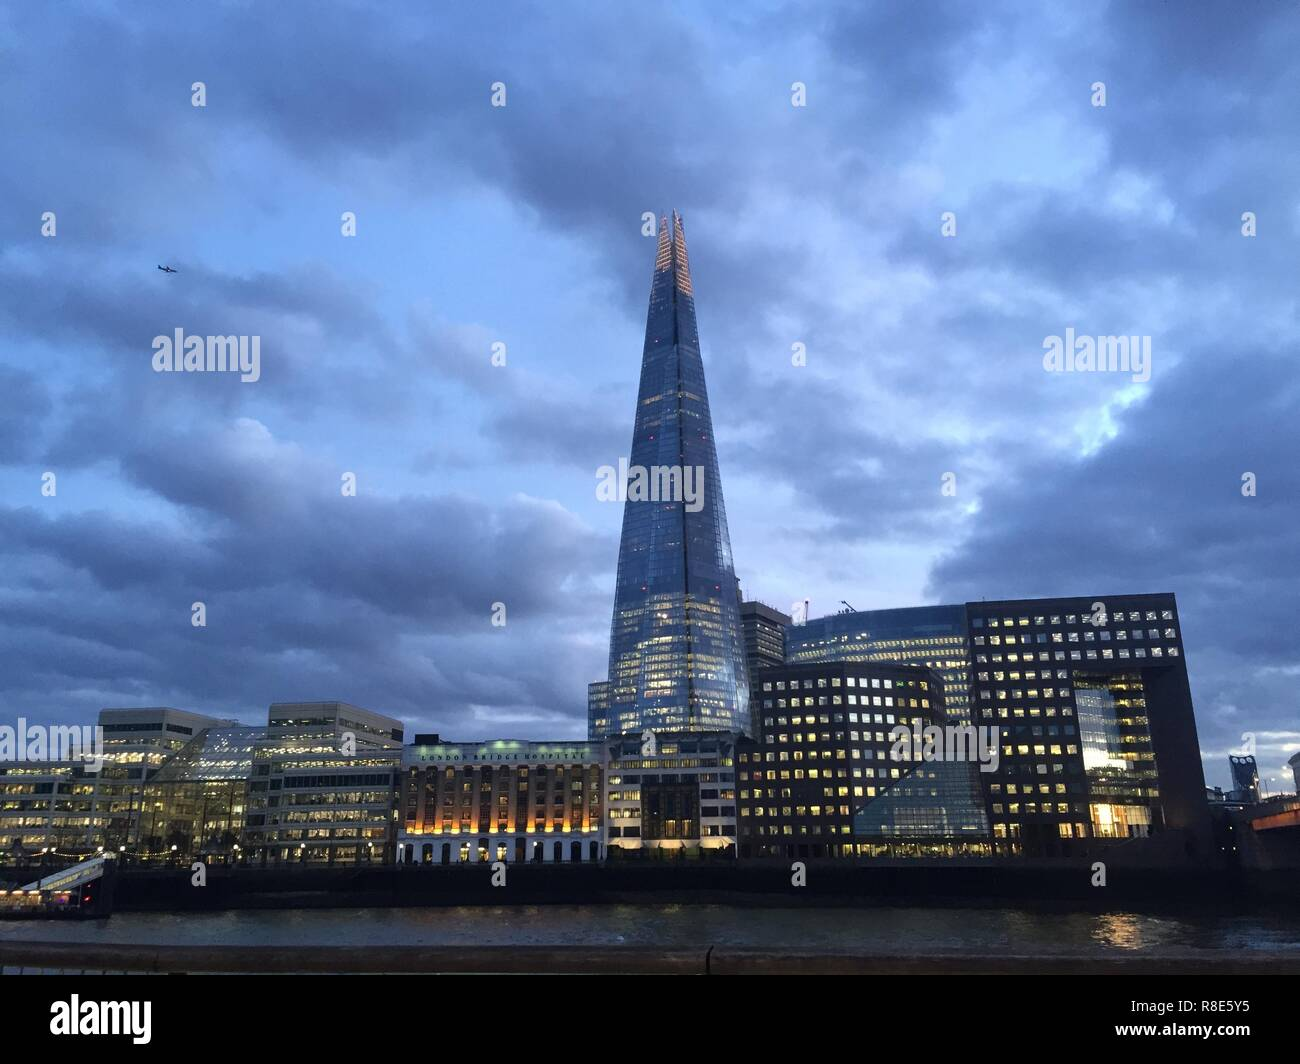 London England February 12 2018 The Famous Skyscraper At Dusk Across River Thames Illuminated By Interior Lights With Cloudy Sky Background